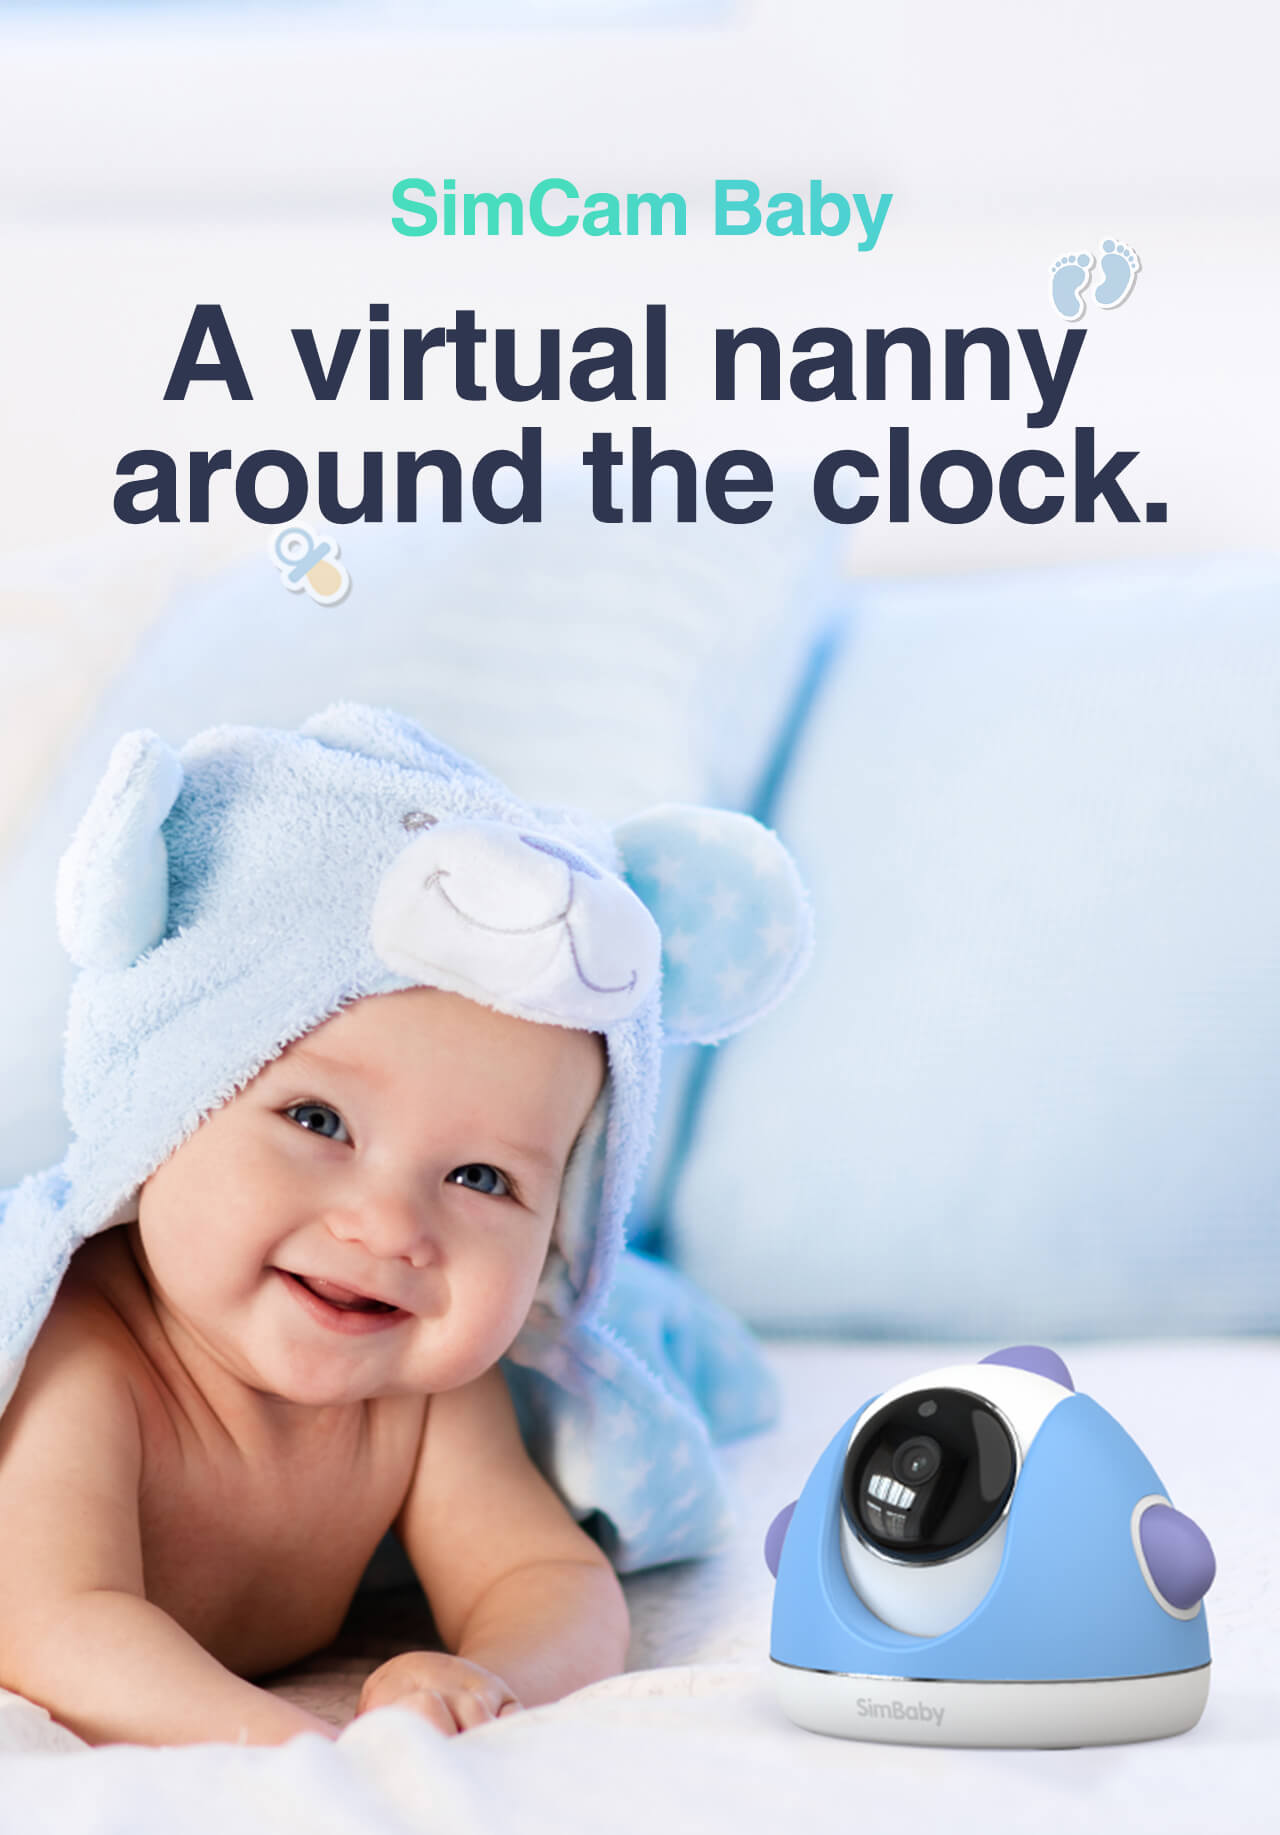 SimCam AI baby monitor